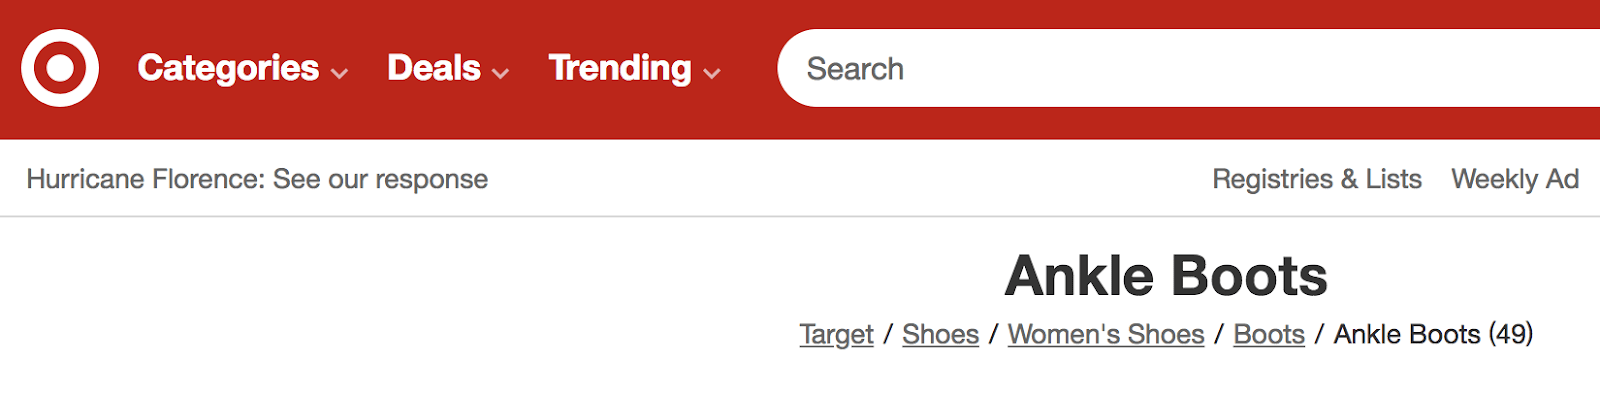 an example of breadcrumb navigation on the target website